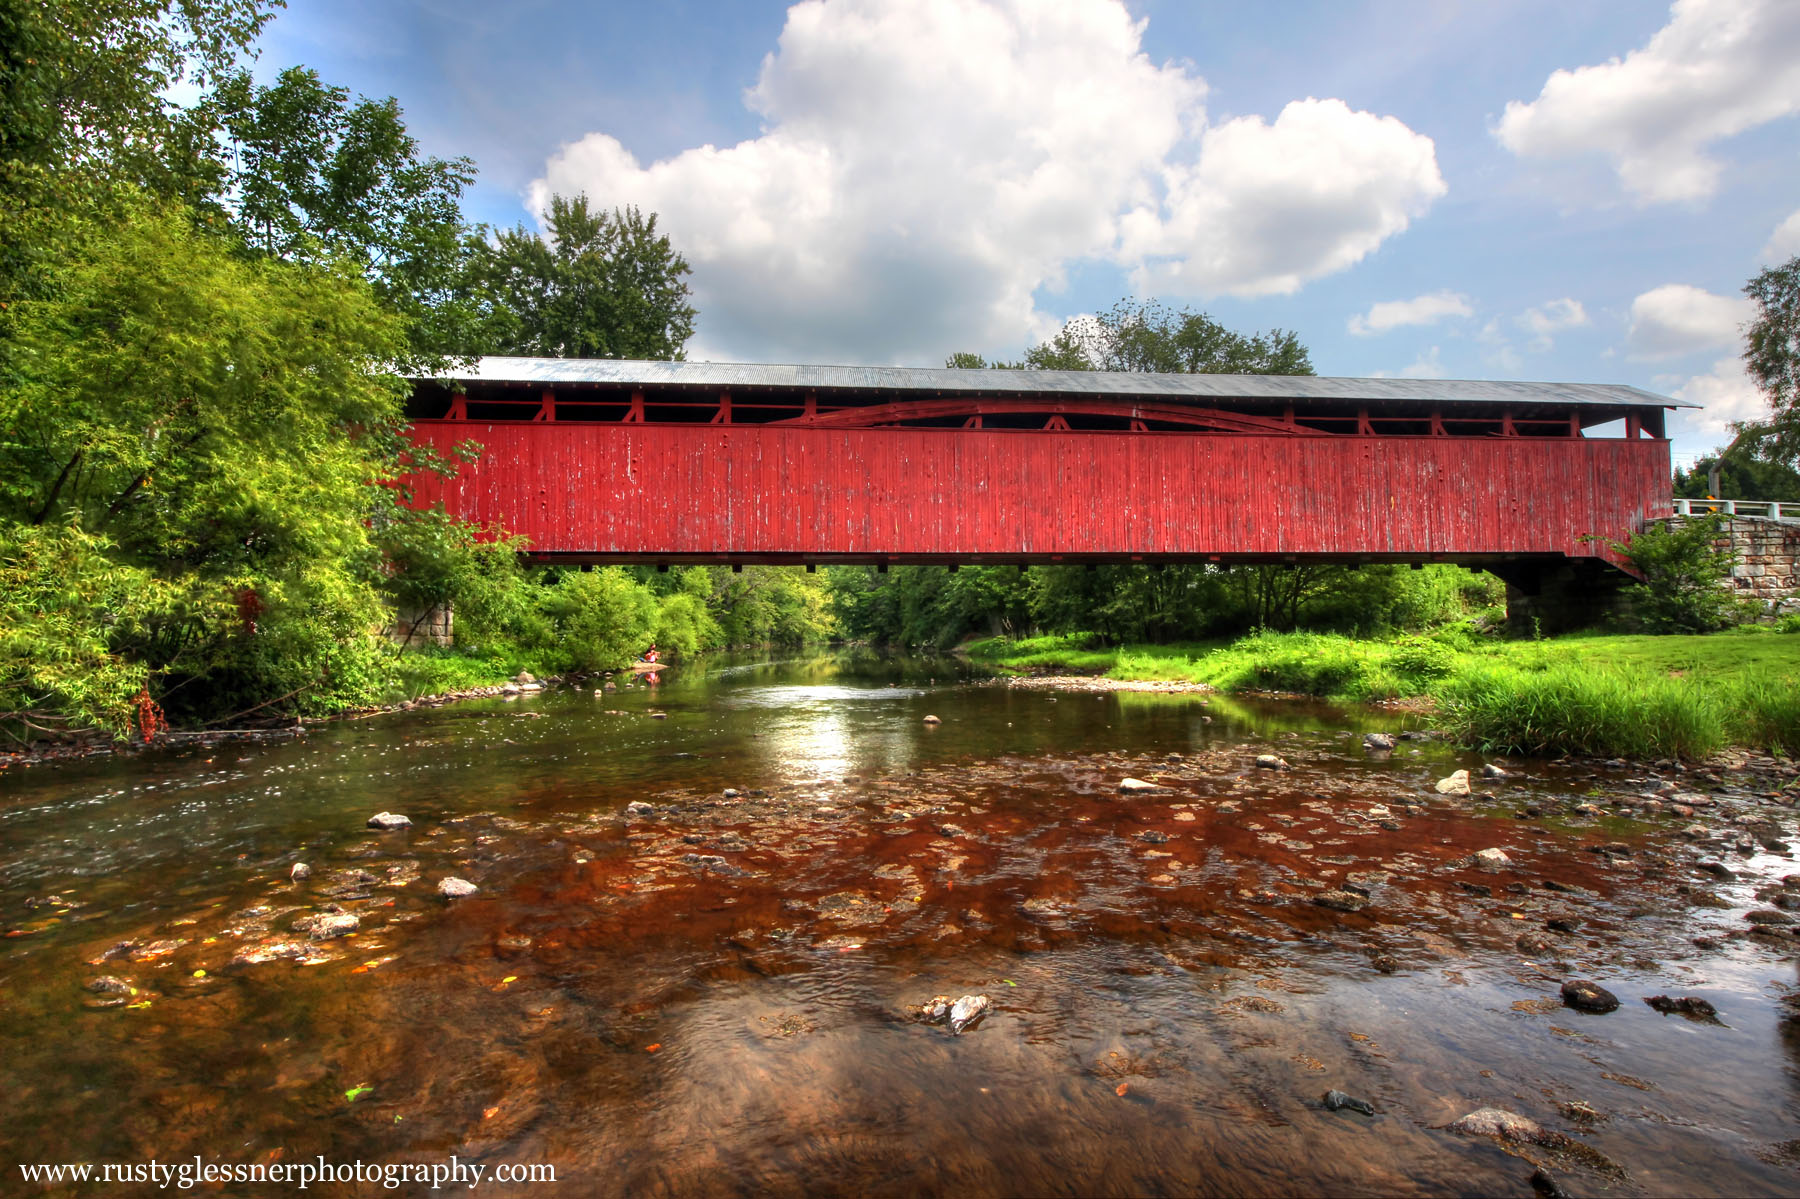 Herline Covered Bridge, located near Manns Choice, Bedford County, Pennsylvania.